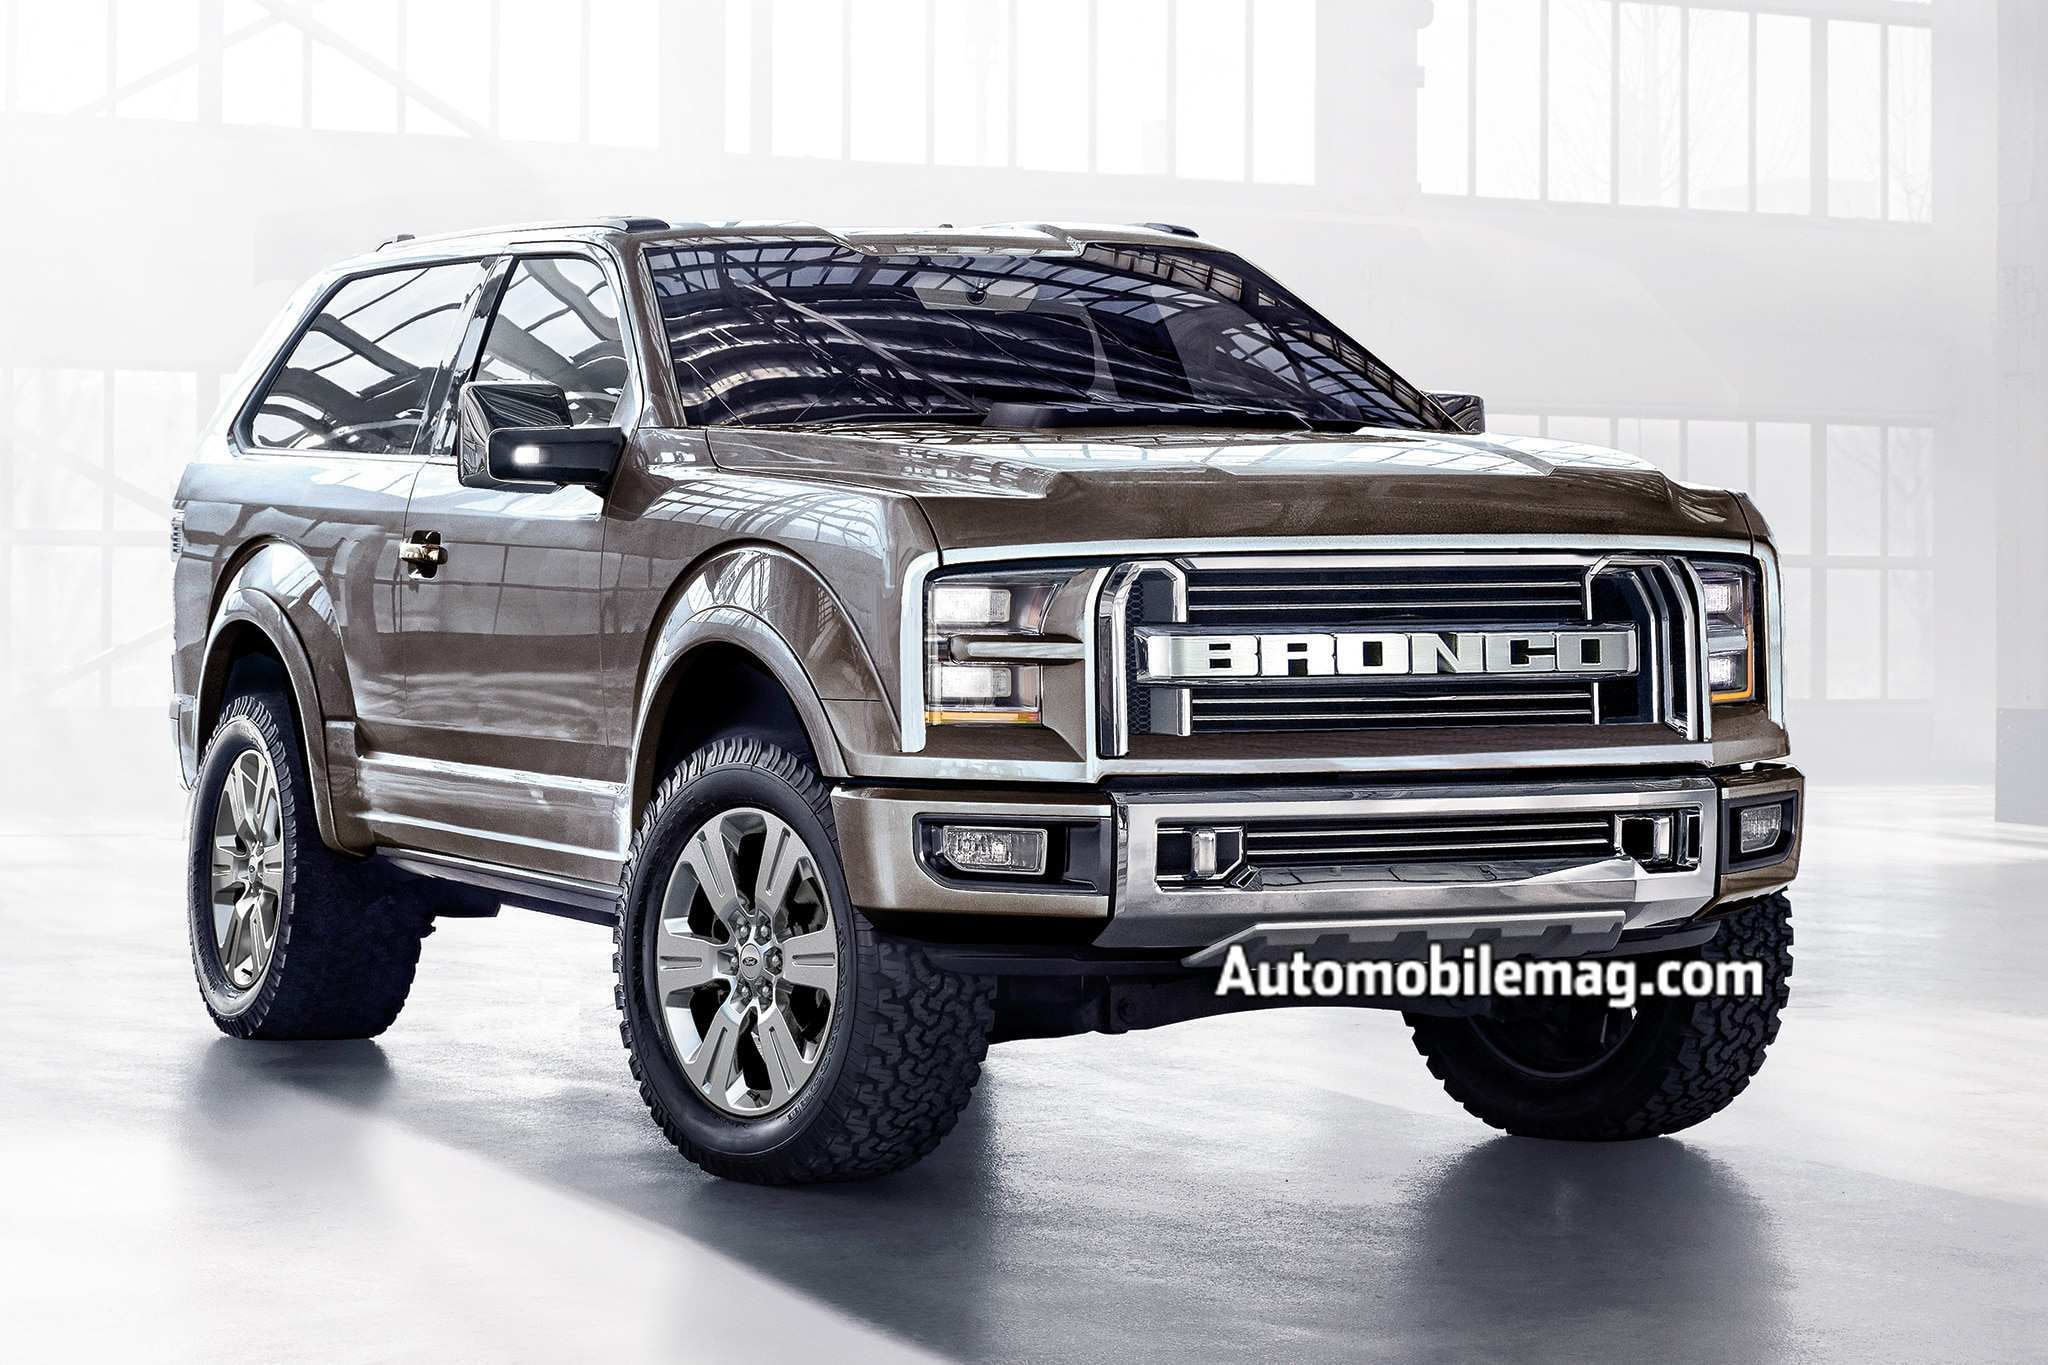 53 The Best 2020 Ford Bronco And Ranger History